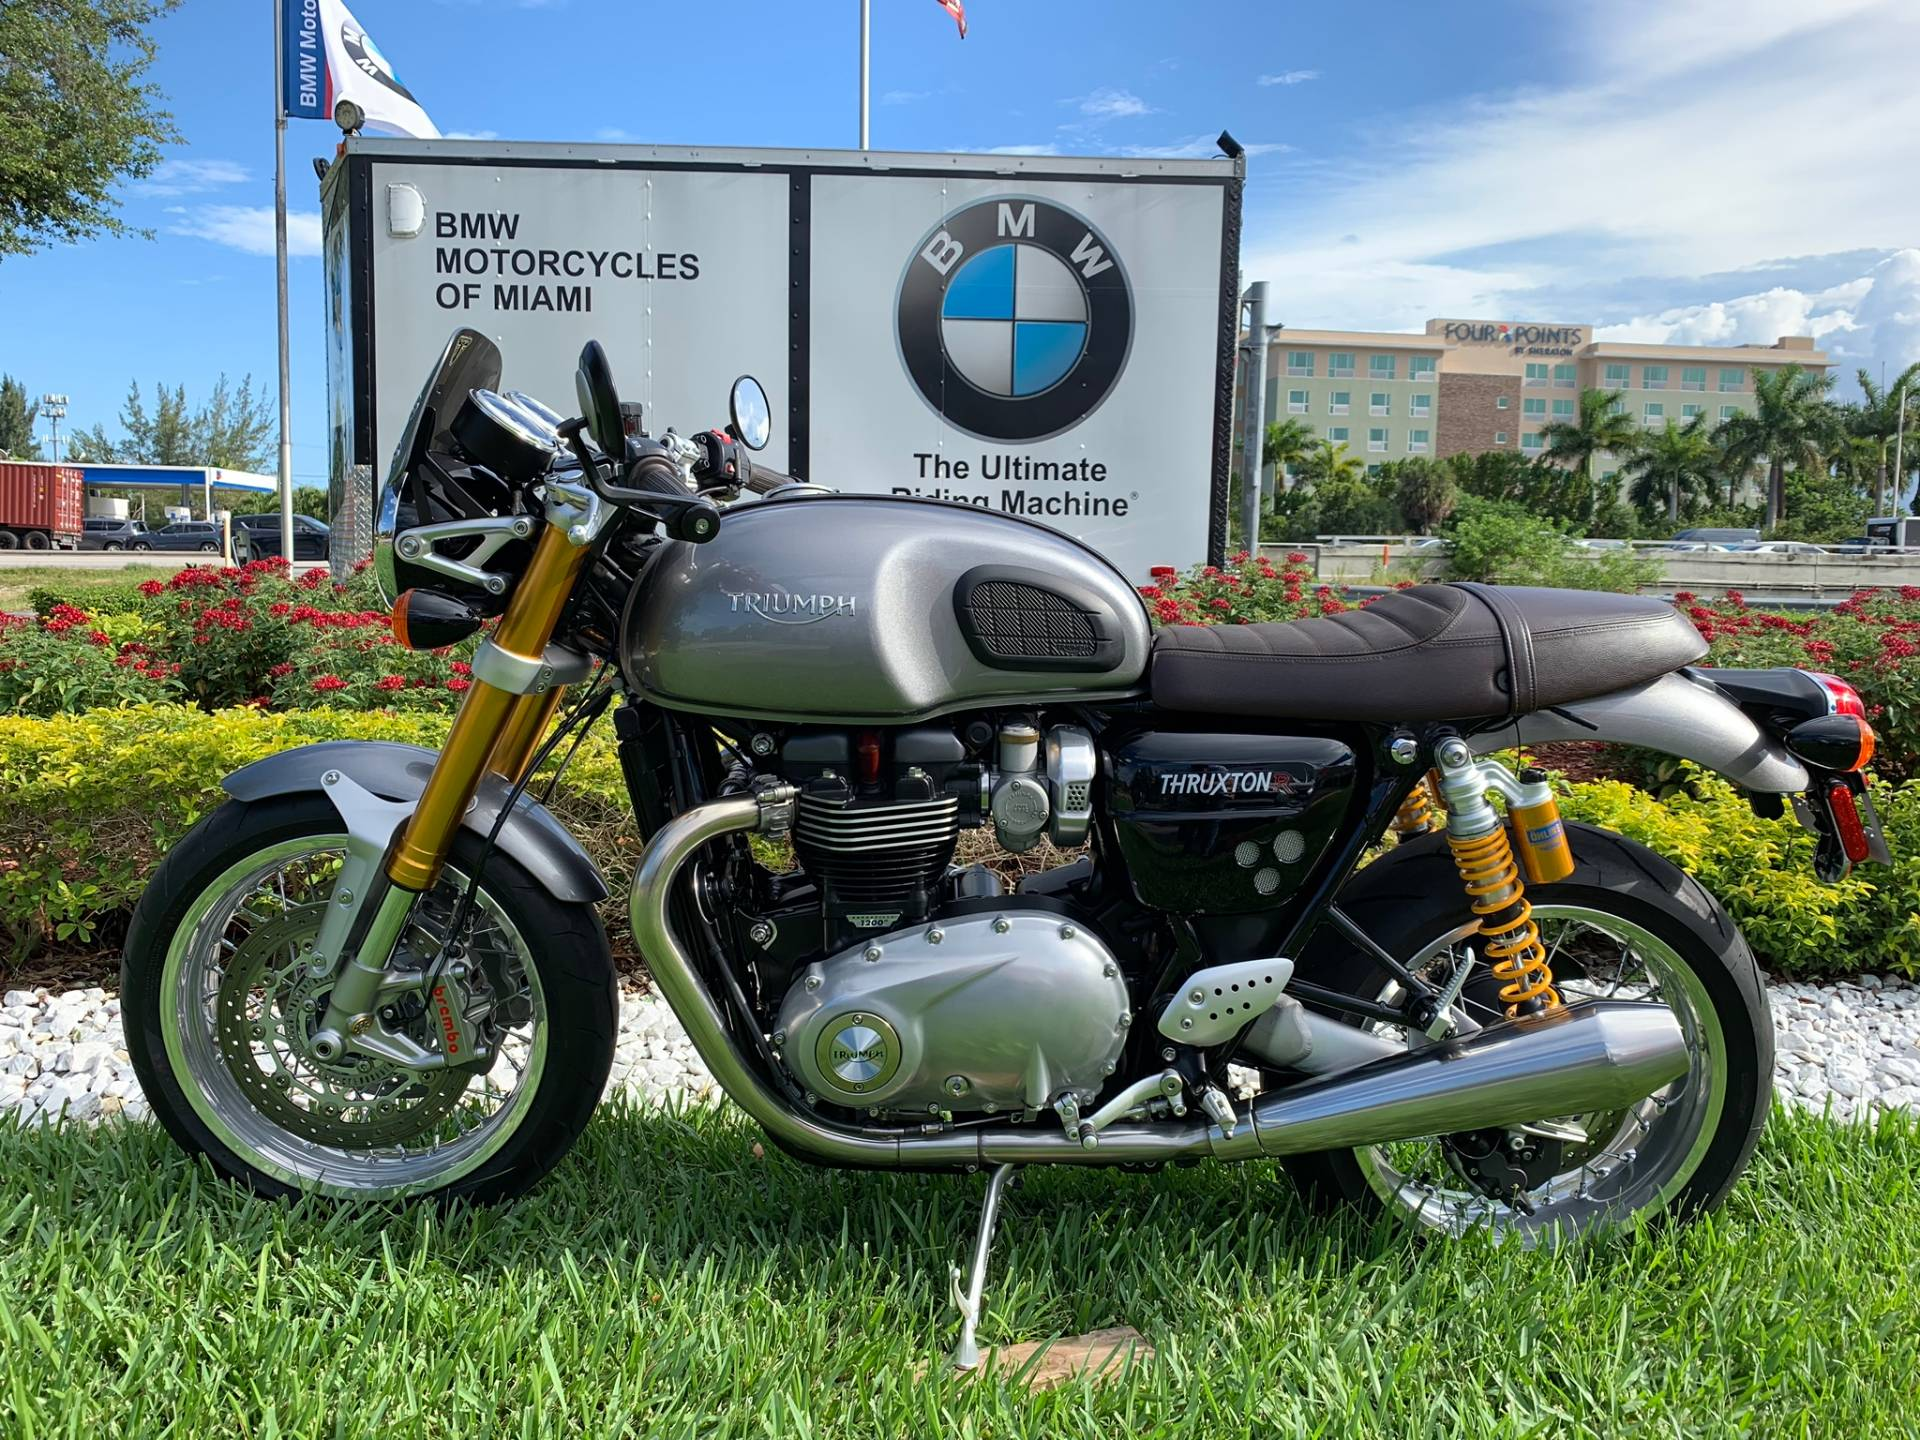 Used 2016 Triumph Thruxton 1200 R for sale,  2016 Triumph Thruxton 1200R for sale,  Triumph Thruxton1200R,  Used ThruxtonR, Cafe. Cruiser, BMW Motorcycles of Miami, Motorcycles of Miami, Motorcycles Miami, New Motorcycles, Used Motorcycles, pre-owned. #BMWMotorcyclesOfMiami #MotorcyclesOfMiami #Moto - Photo 1